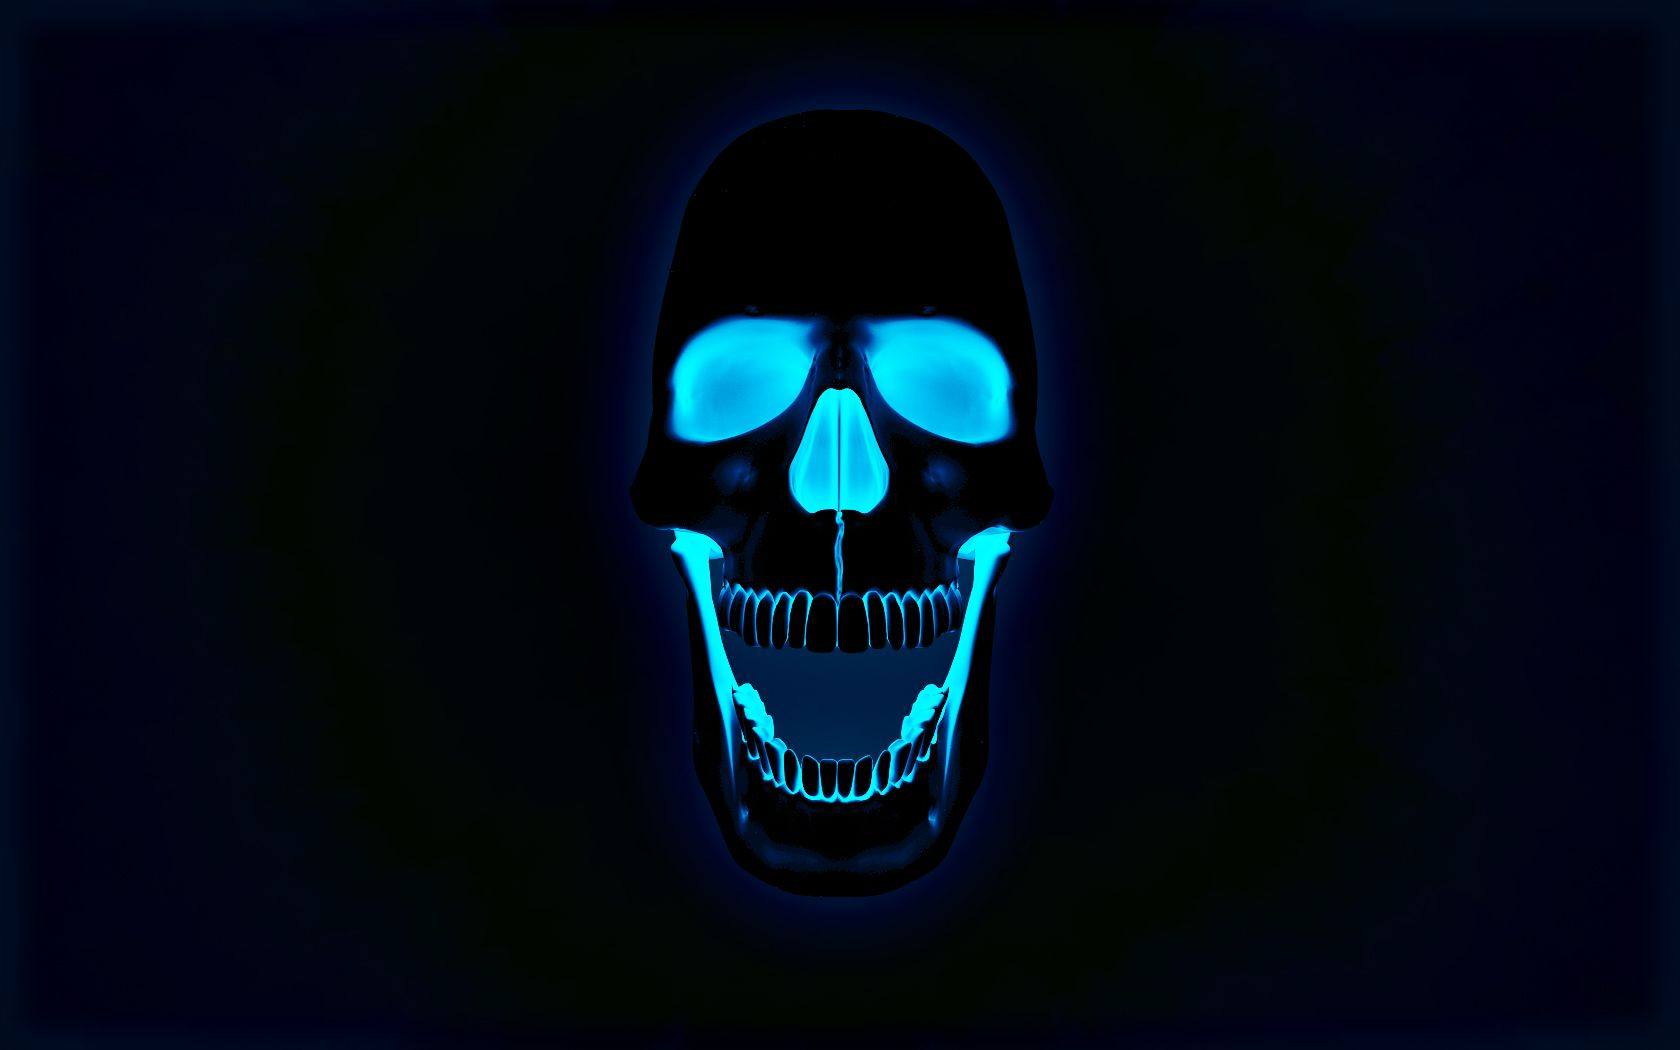 Download Skull Wallpaper Hd Resolution Is Cool Wallpapers at SXGA 16:10 720p Standard Smartwatch